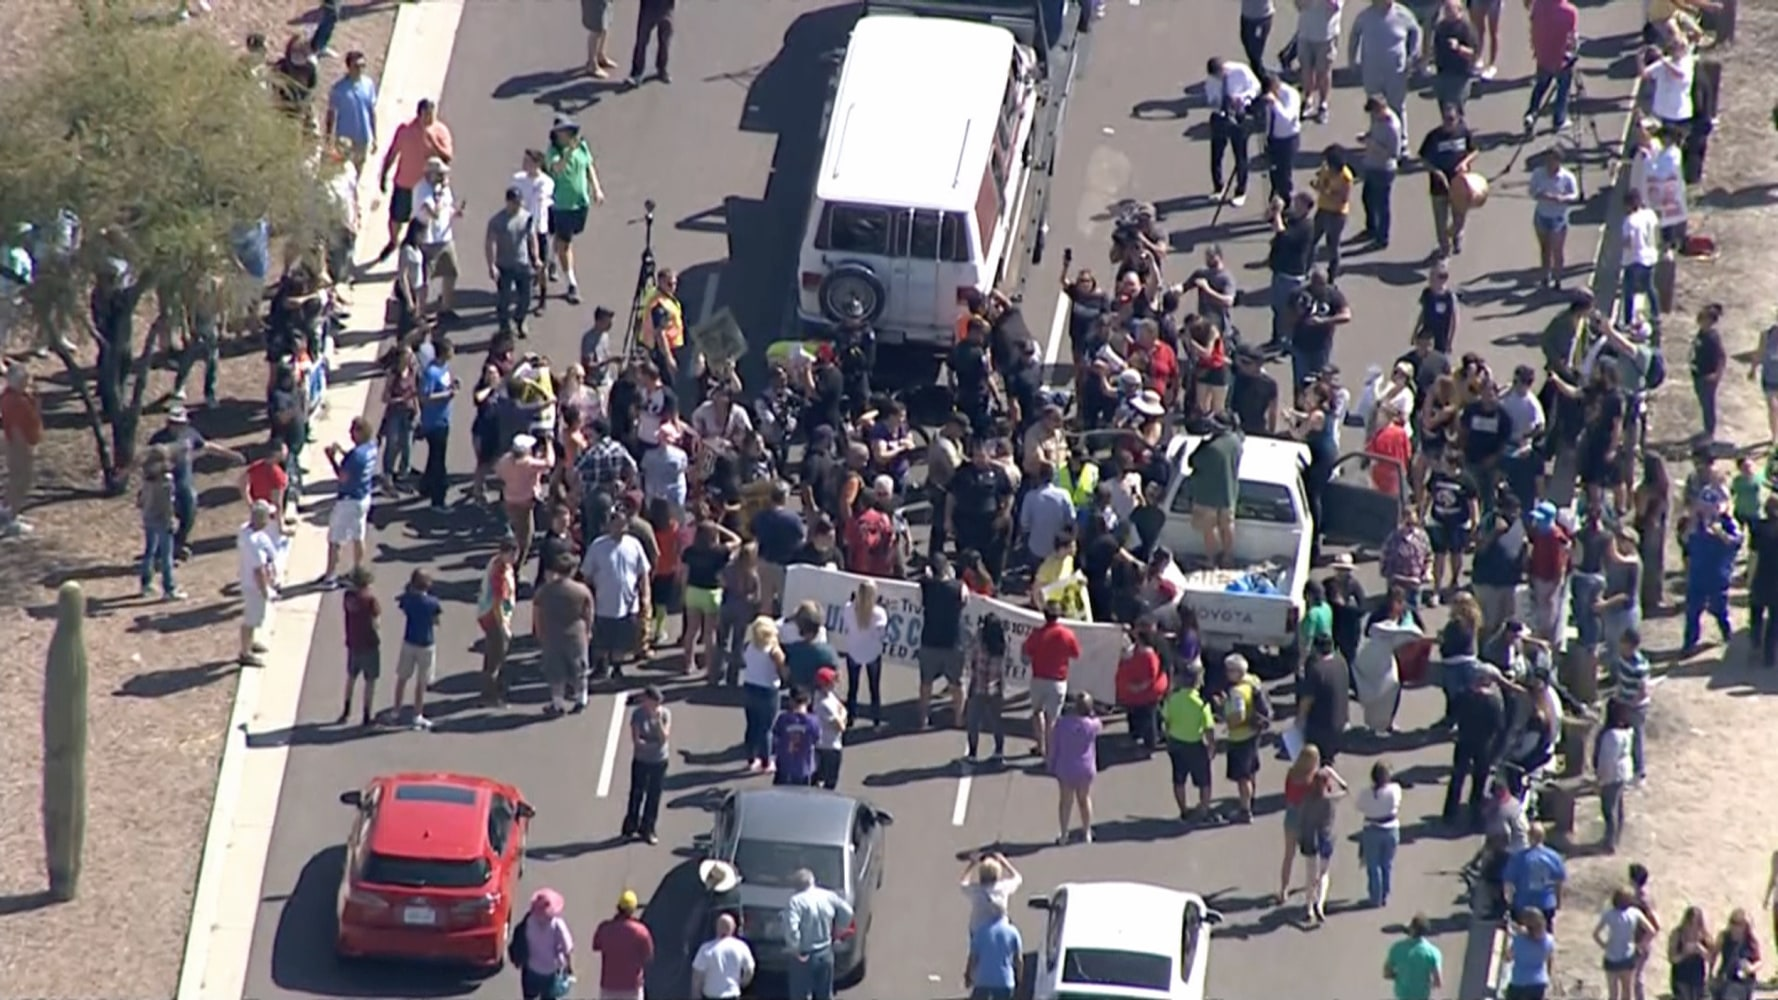 Protest News: Three Trump Protesters In Arizona Arrested, While